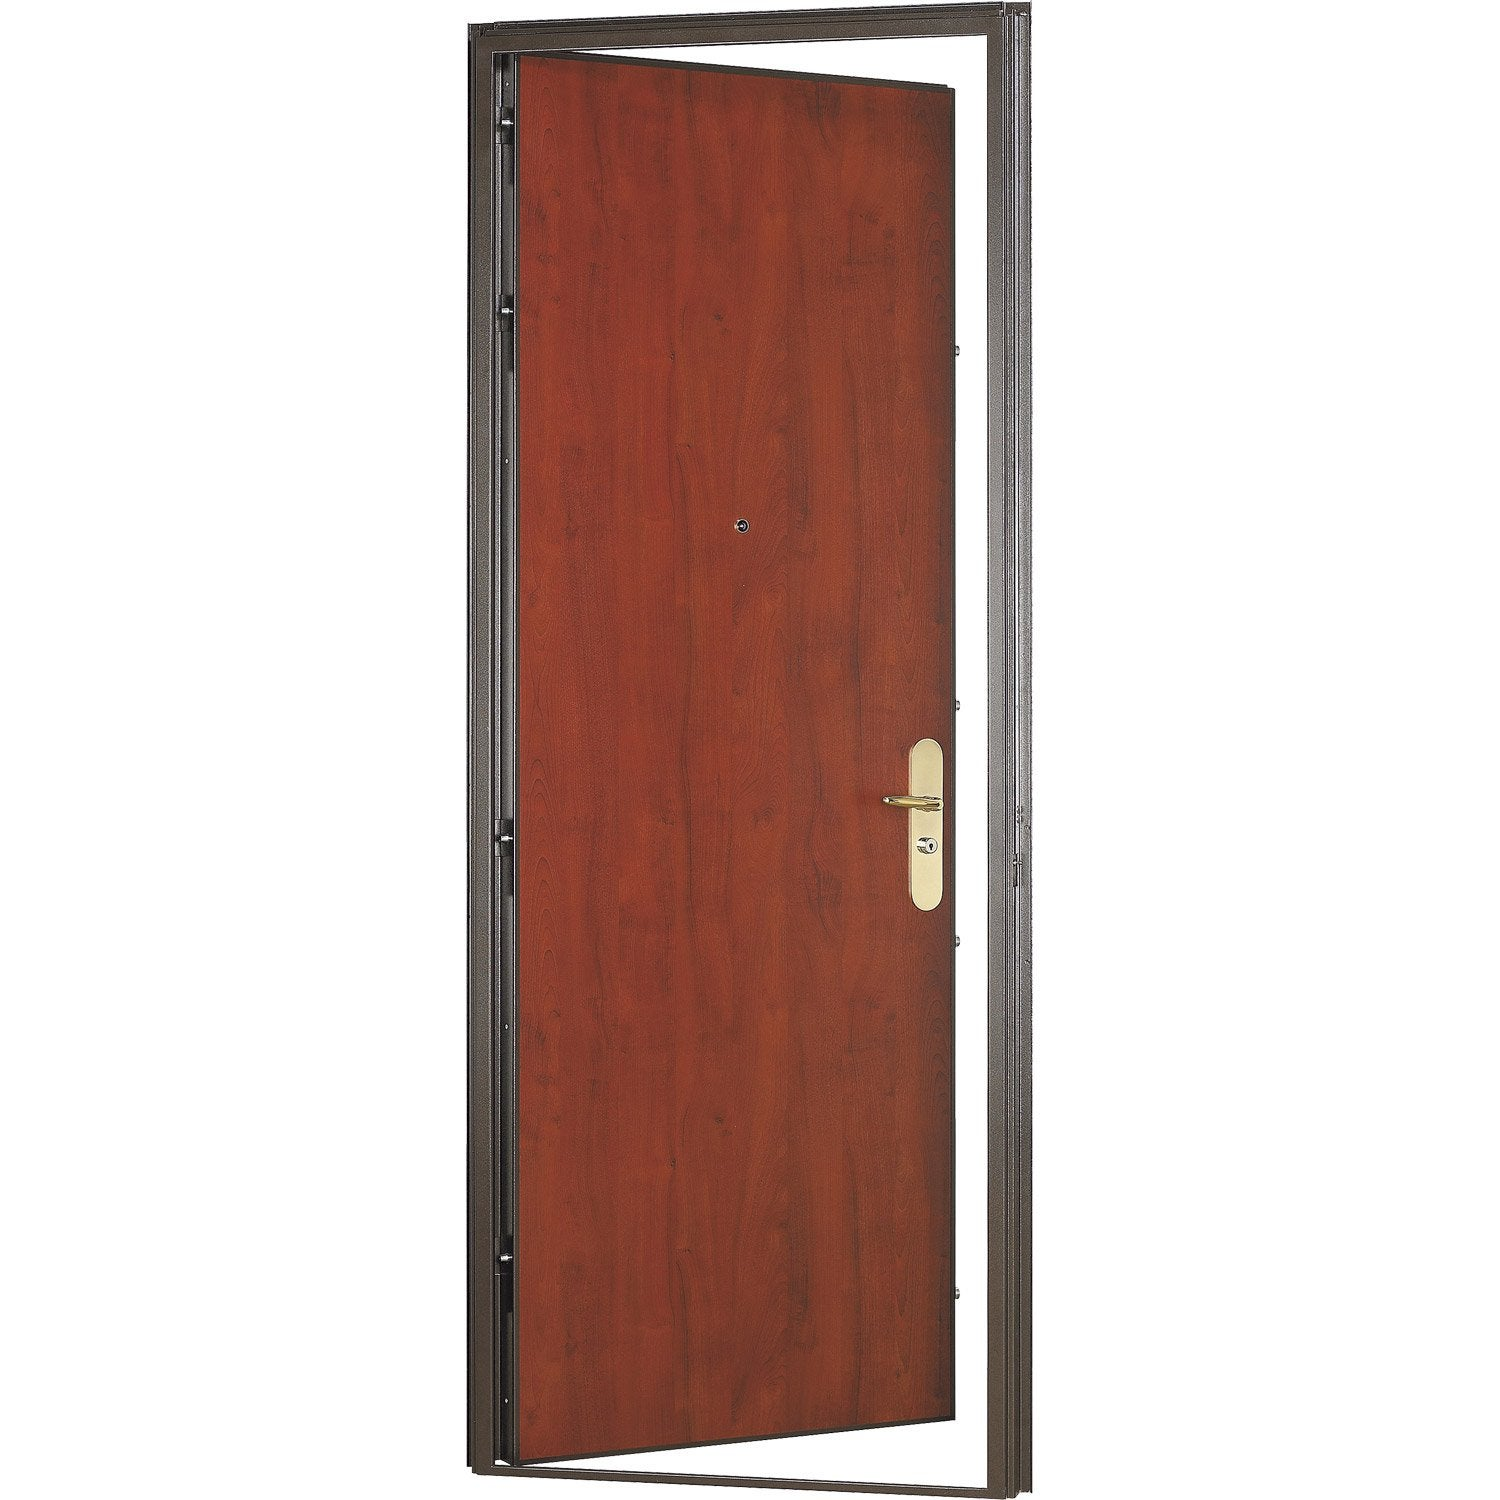 Porte blind e sur mesure diamant 2 leroy merlin for Porte de saloon leroy merlin